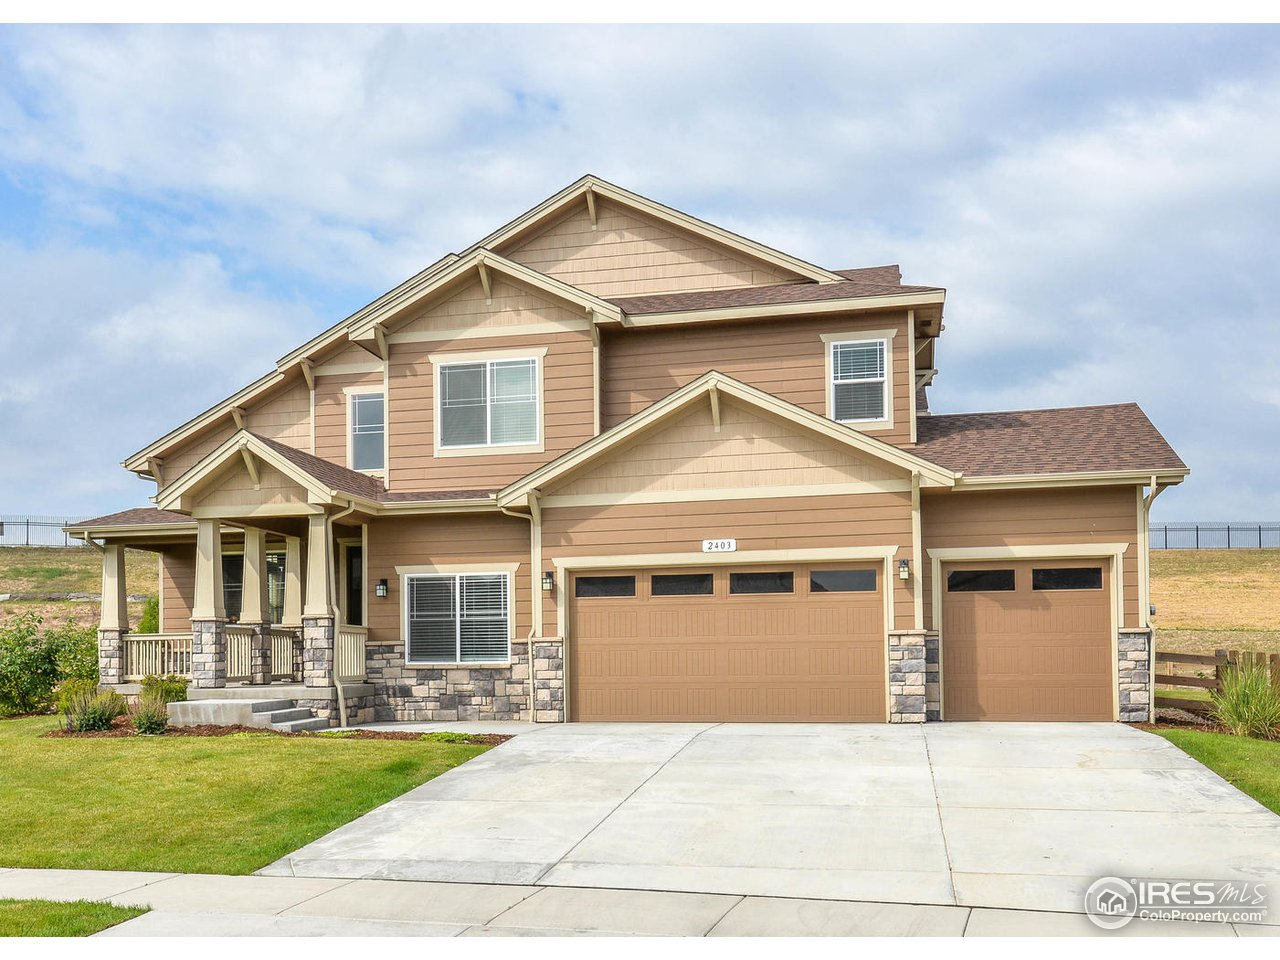 2403 Palomino Dr, Fort Collins CO 80525